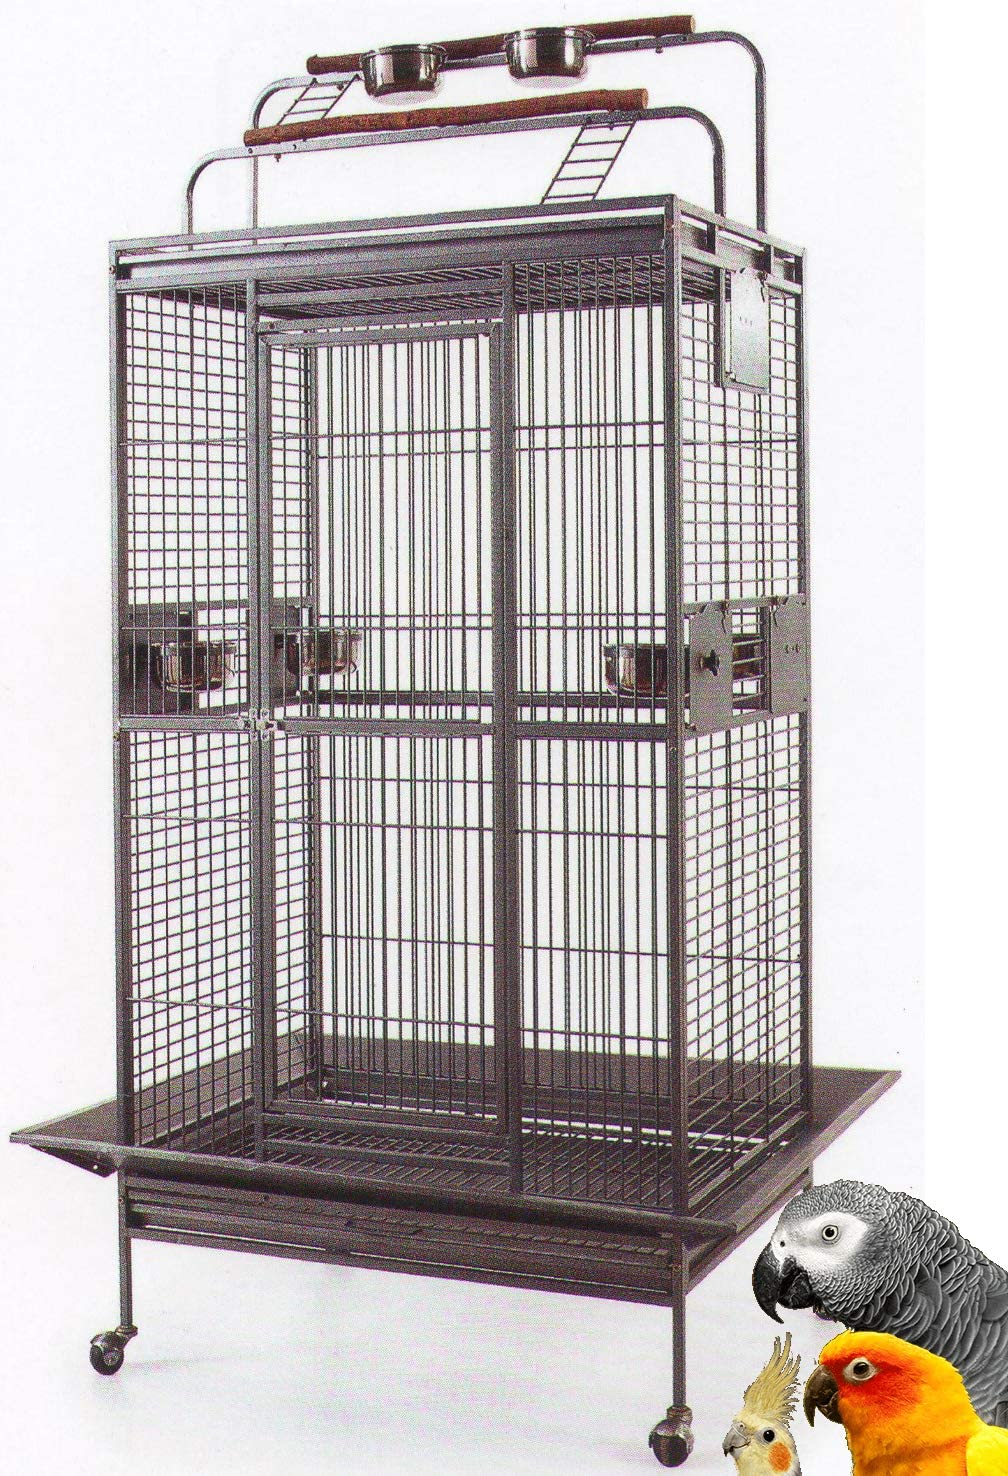 Mcage Large Wrought Iron Bird Parrot Cage Double Ladders Open/Close Play Top, Include Seed Guard and Play Top